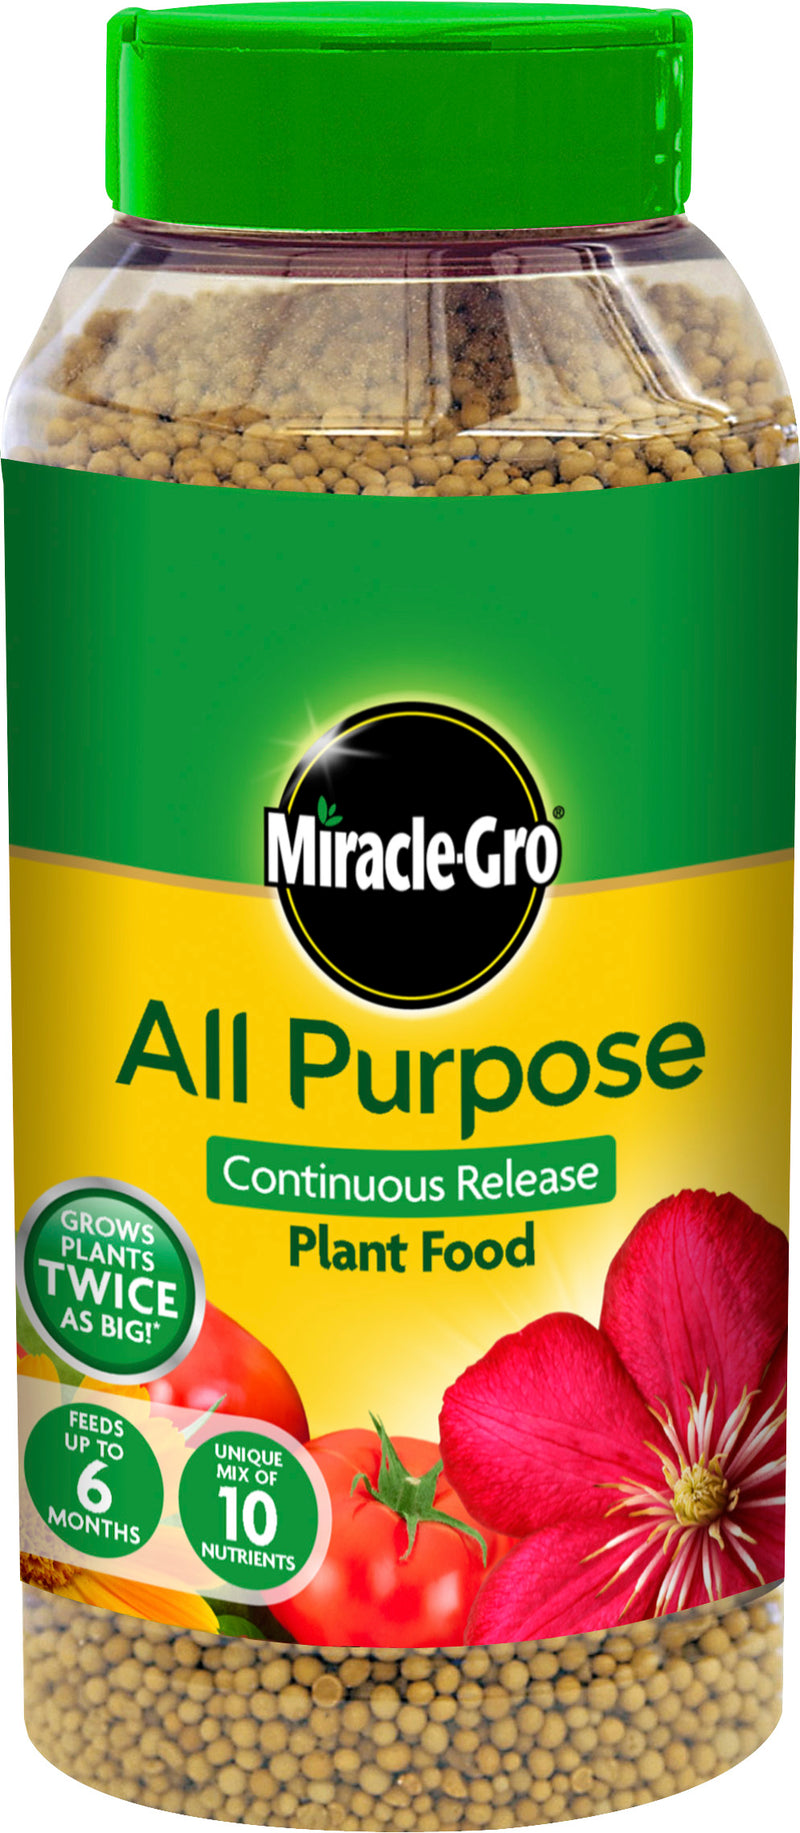 Miracle Gro All Purpose Continuous Release Plant Food 1KG Shaker Jar